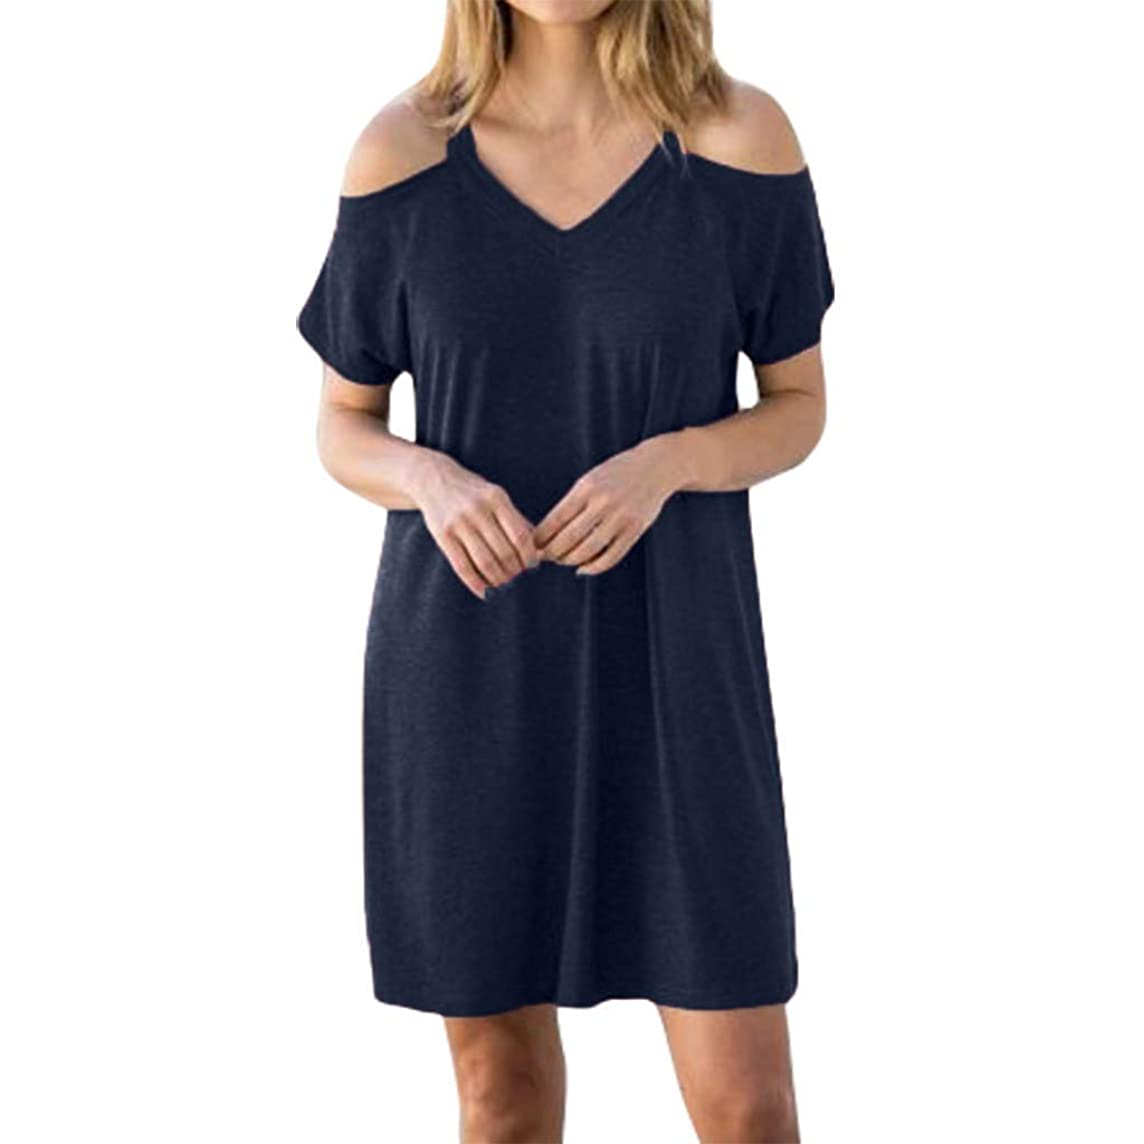 MURTIAL Women's T-Shirt Dress Ladies Summer Fashion Solid Color Sling Off Shoulder Casual Dress